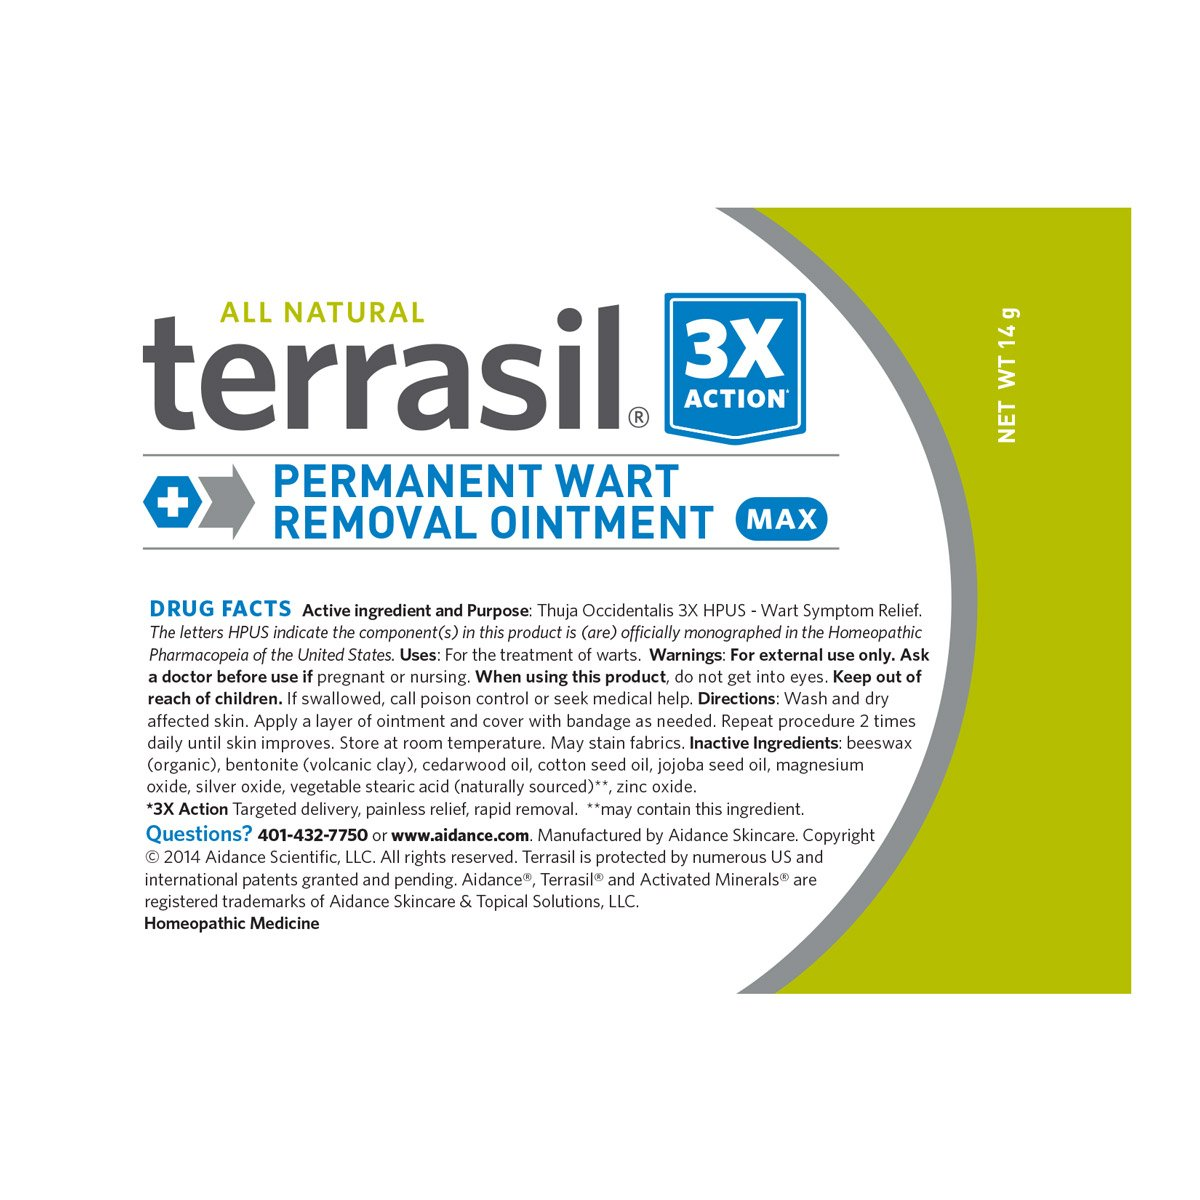 Permanent Wart Remover- for Genital & Facial Warts Maximum Strength Slow Safe Gentle Alternative for Sensitive Skin Dr Recommended Guaranteed All Natural Pain Free Salicylic Acid Free by Terrasil by Aidance Skincare & Topical Solutions (Image #1)